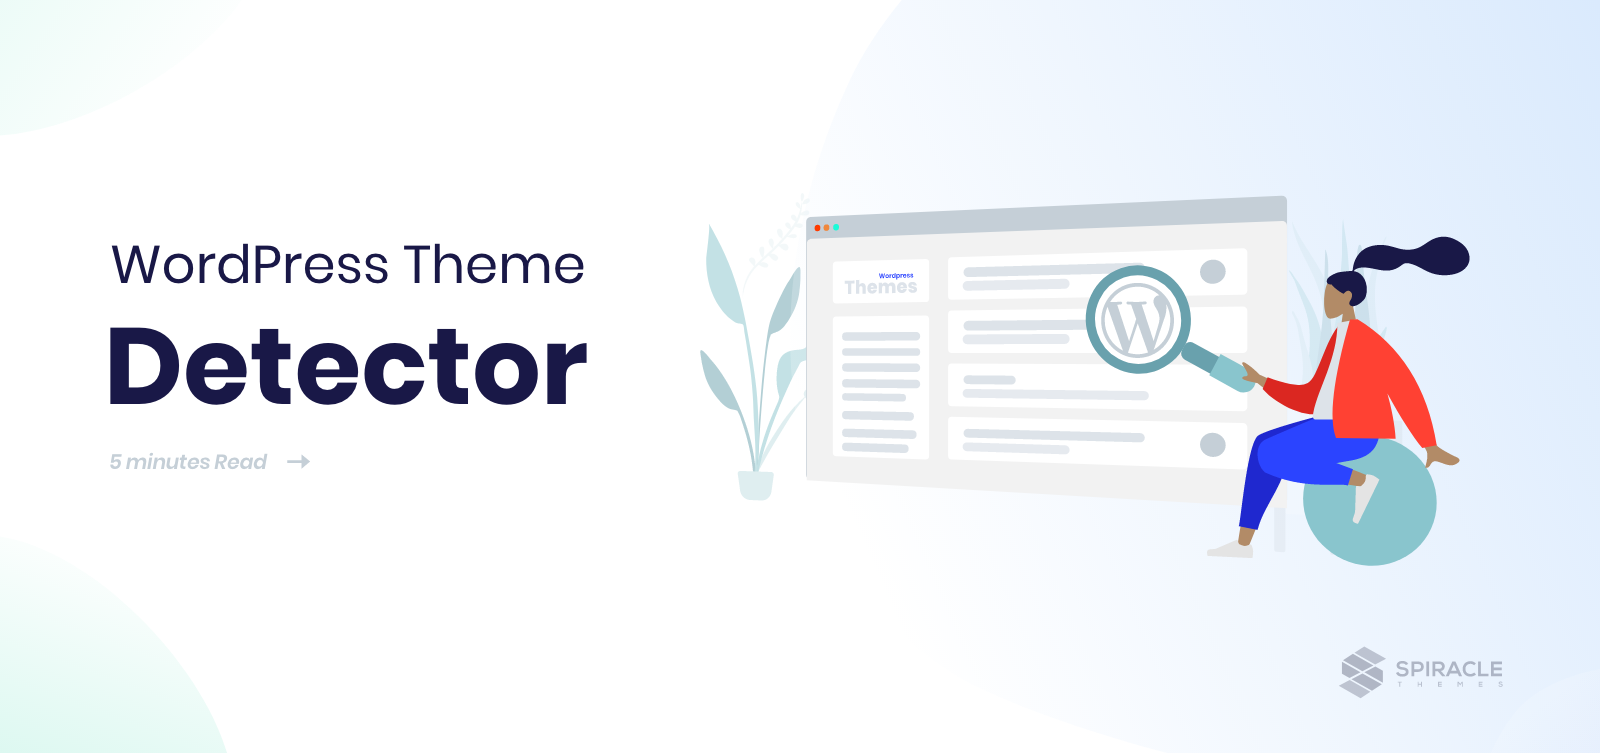 WordPress theme detector tool